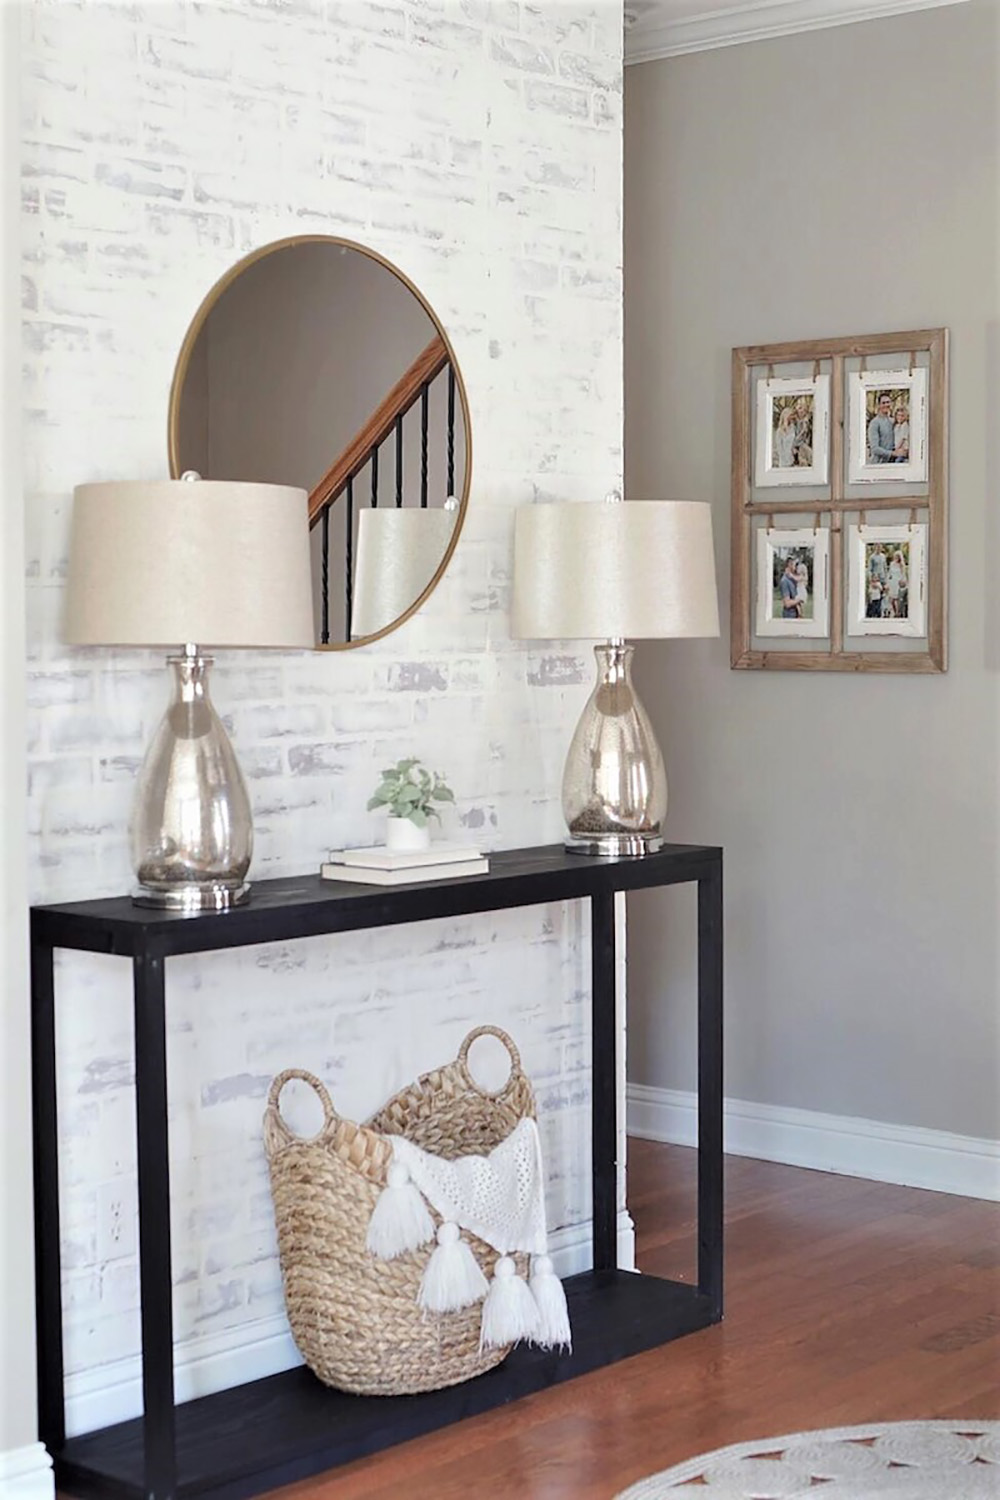 An entryway with a faux whitewashed brick accent wall and decor.